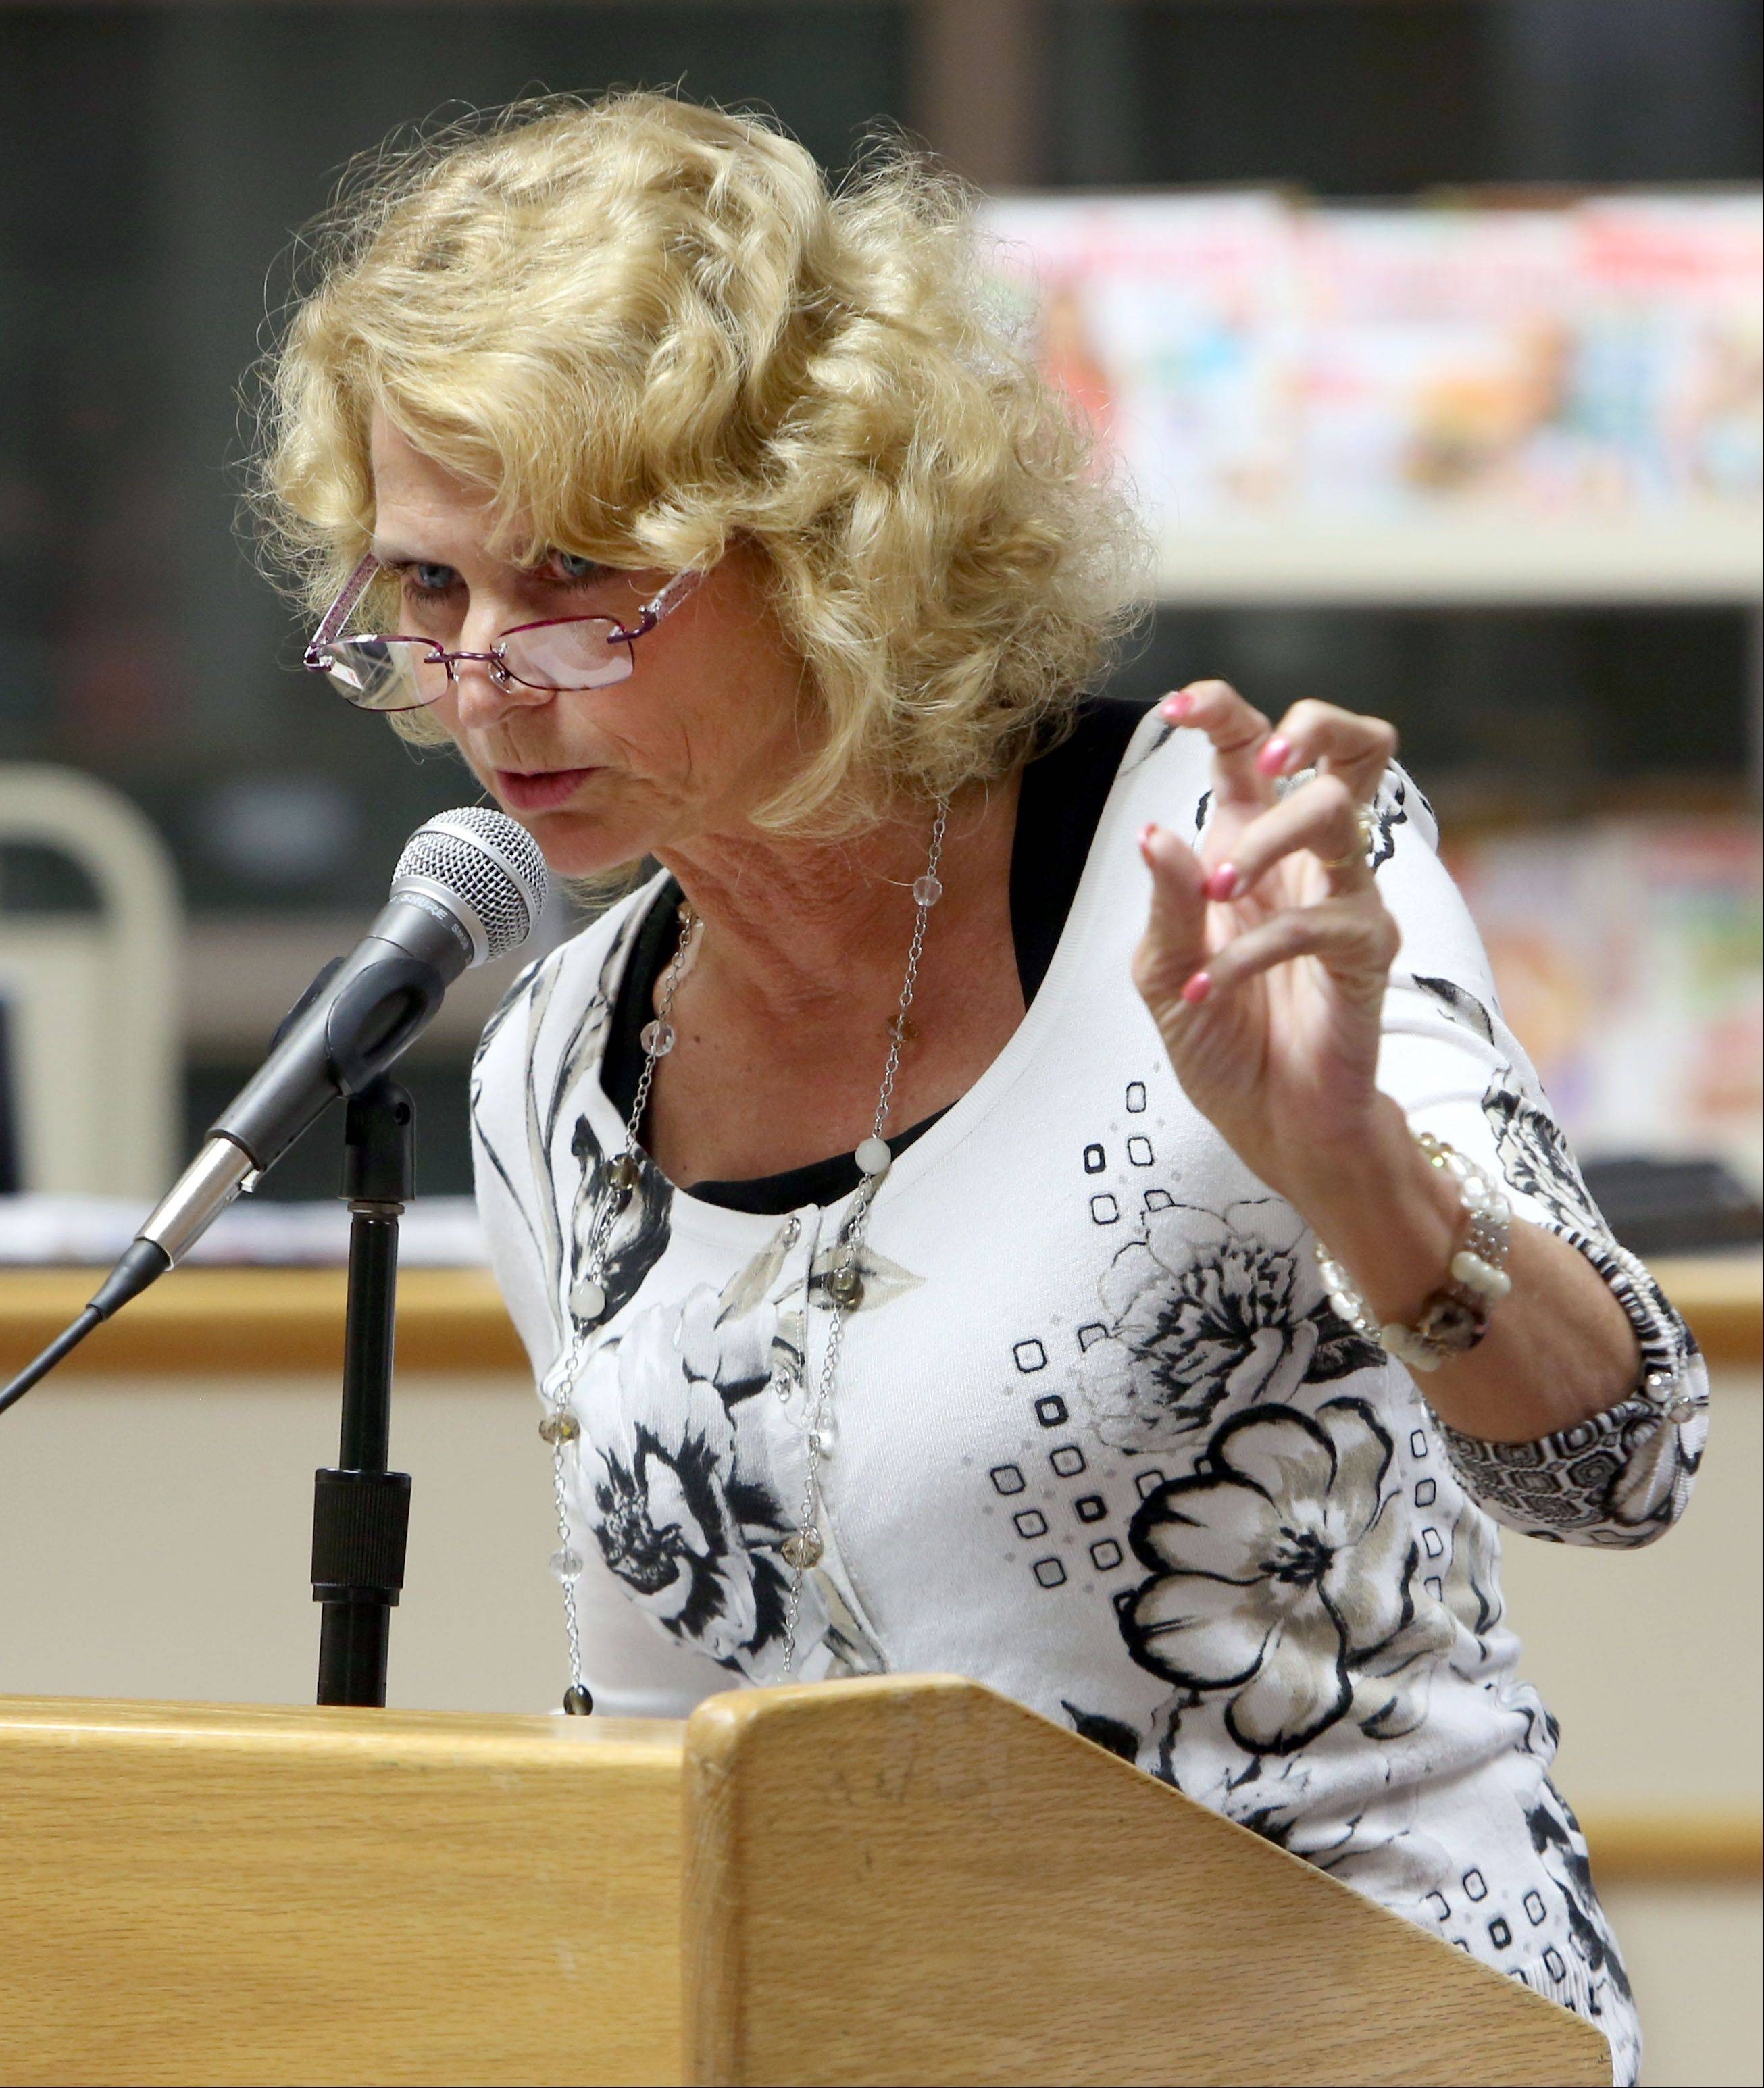 Gurnee Mayor Kristina Kovarik speaks in favor of the board and about the lack of decorum shown at the last Warren Township High School District 121 board meeting.